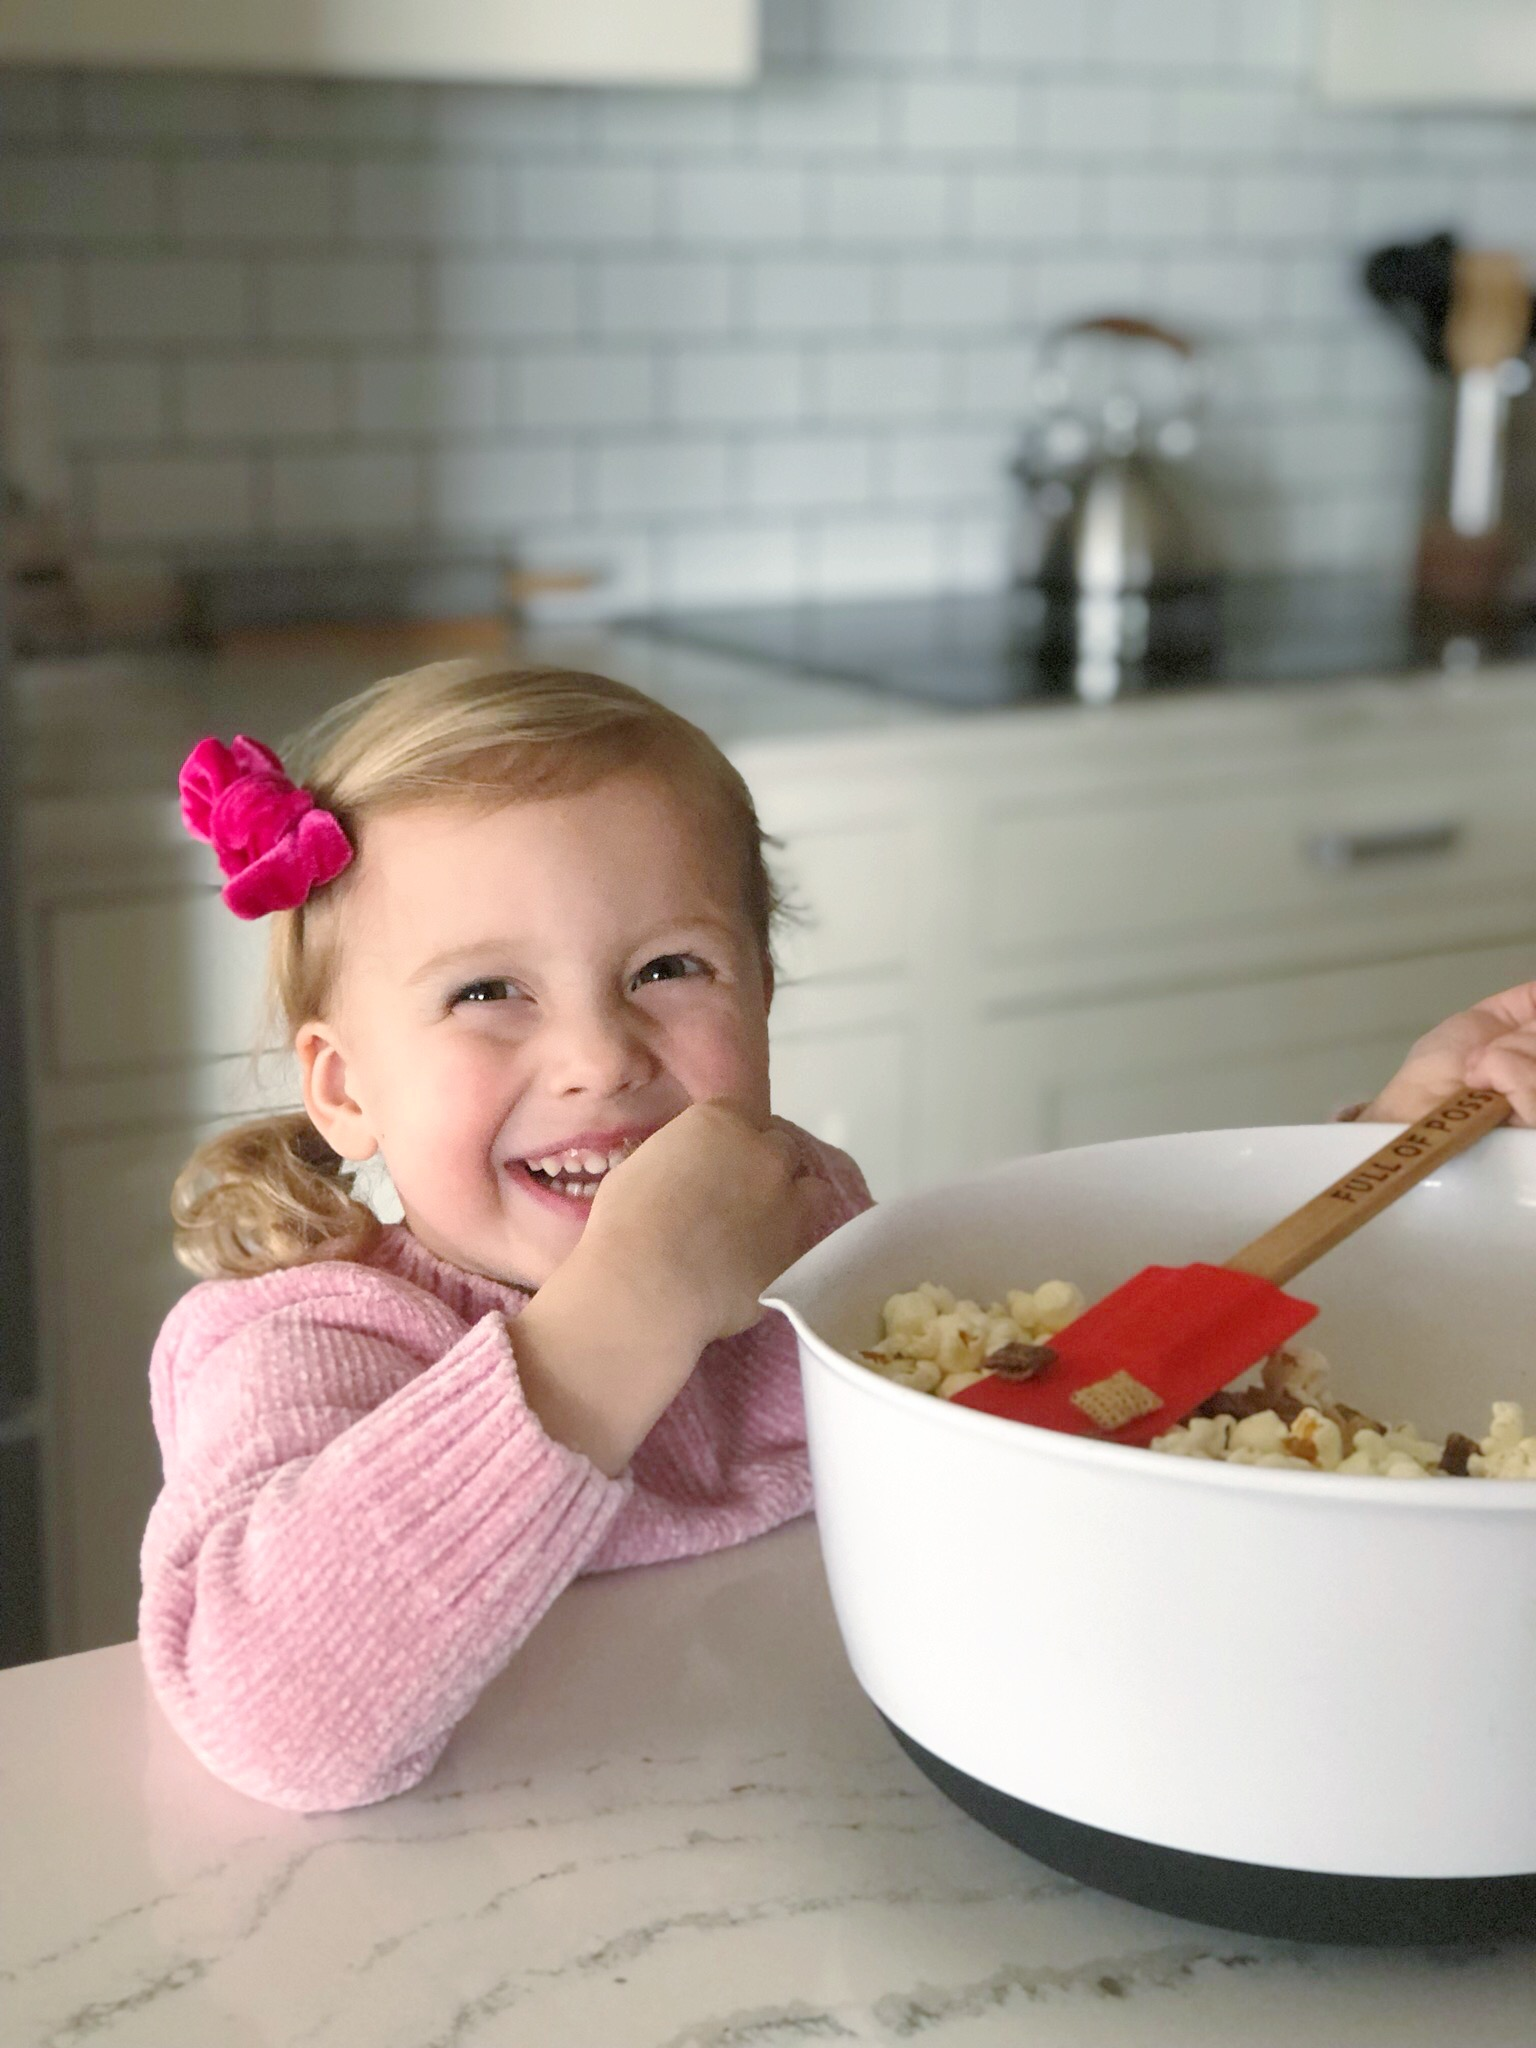 smiling-girl-cooking-kitchen.JPG